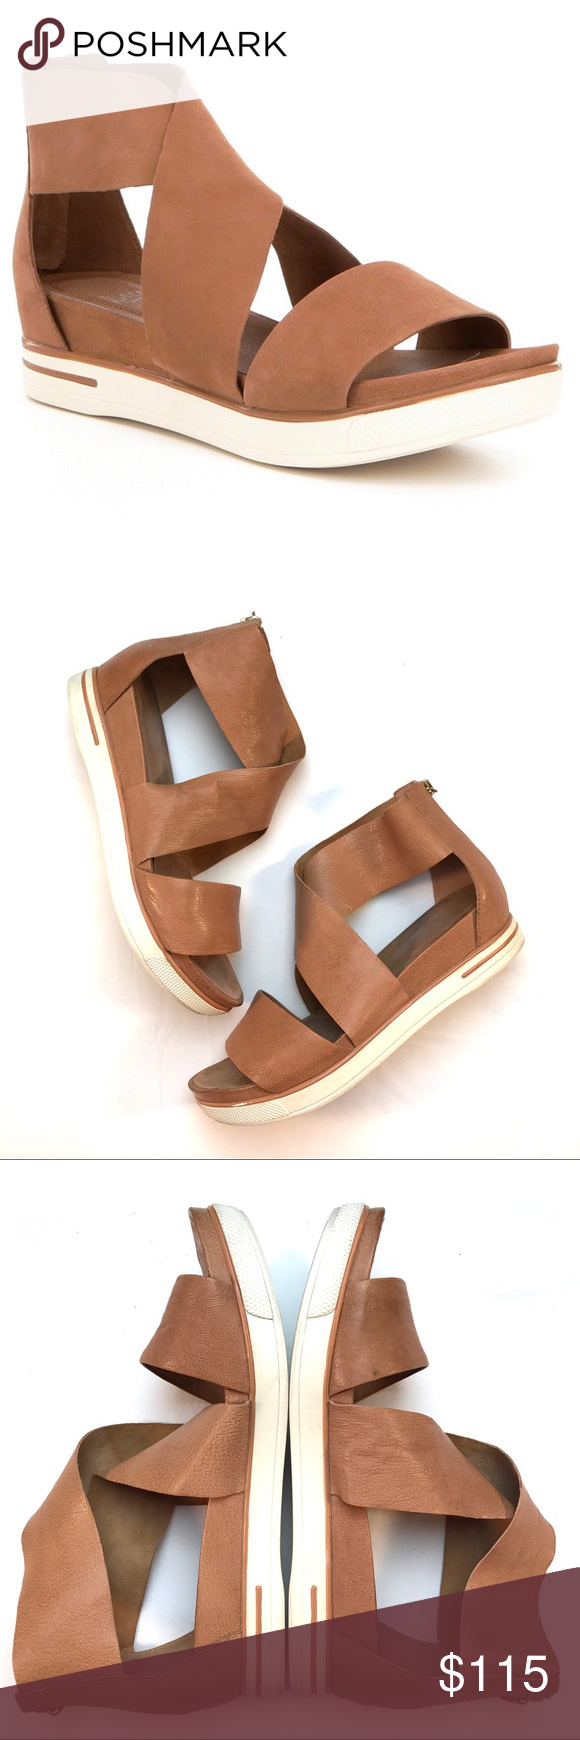 0cc84039f857 Eileen Fisher Leather Criss Cross Sport Sandals Eileen Fisher Tumbled  Leather Criss Cross Banded Backstrap Sport